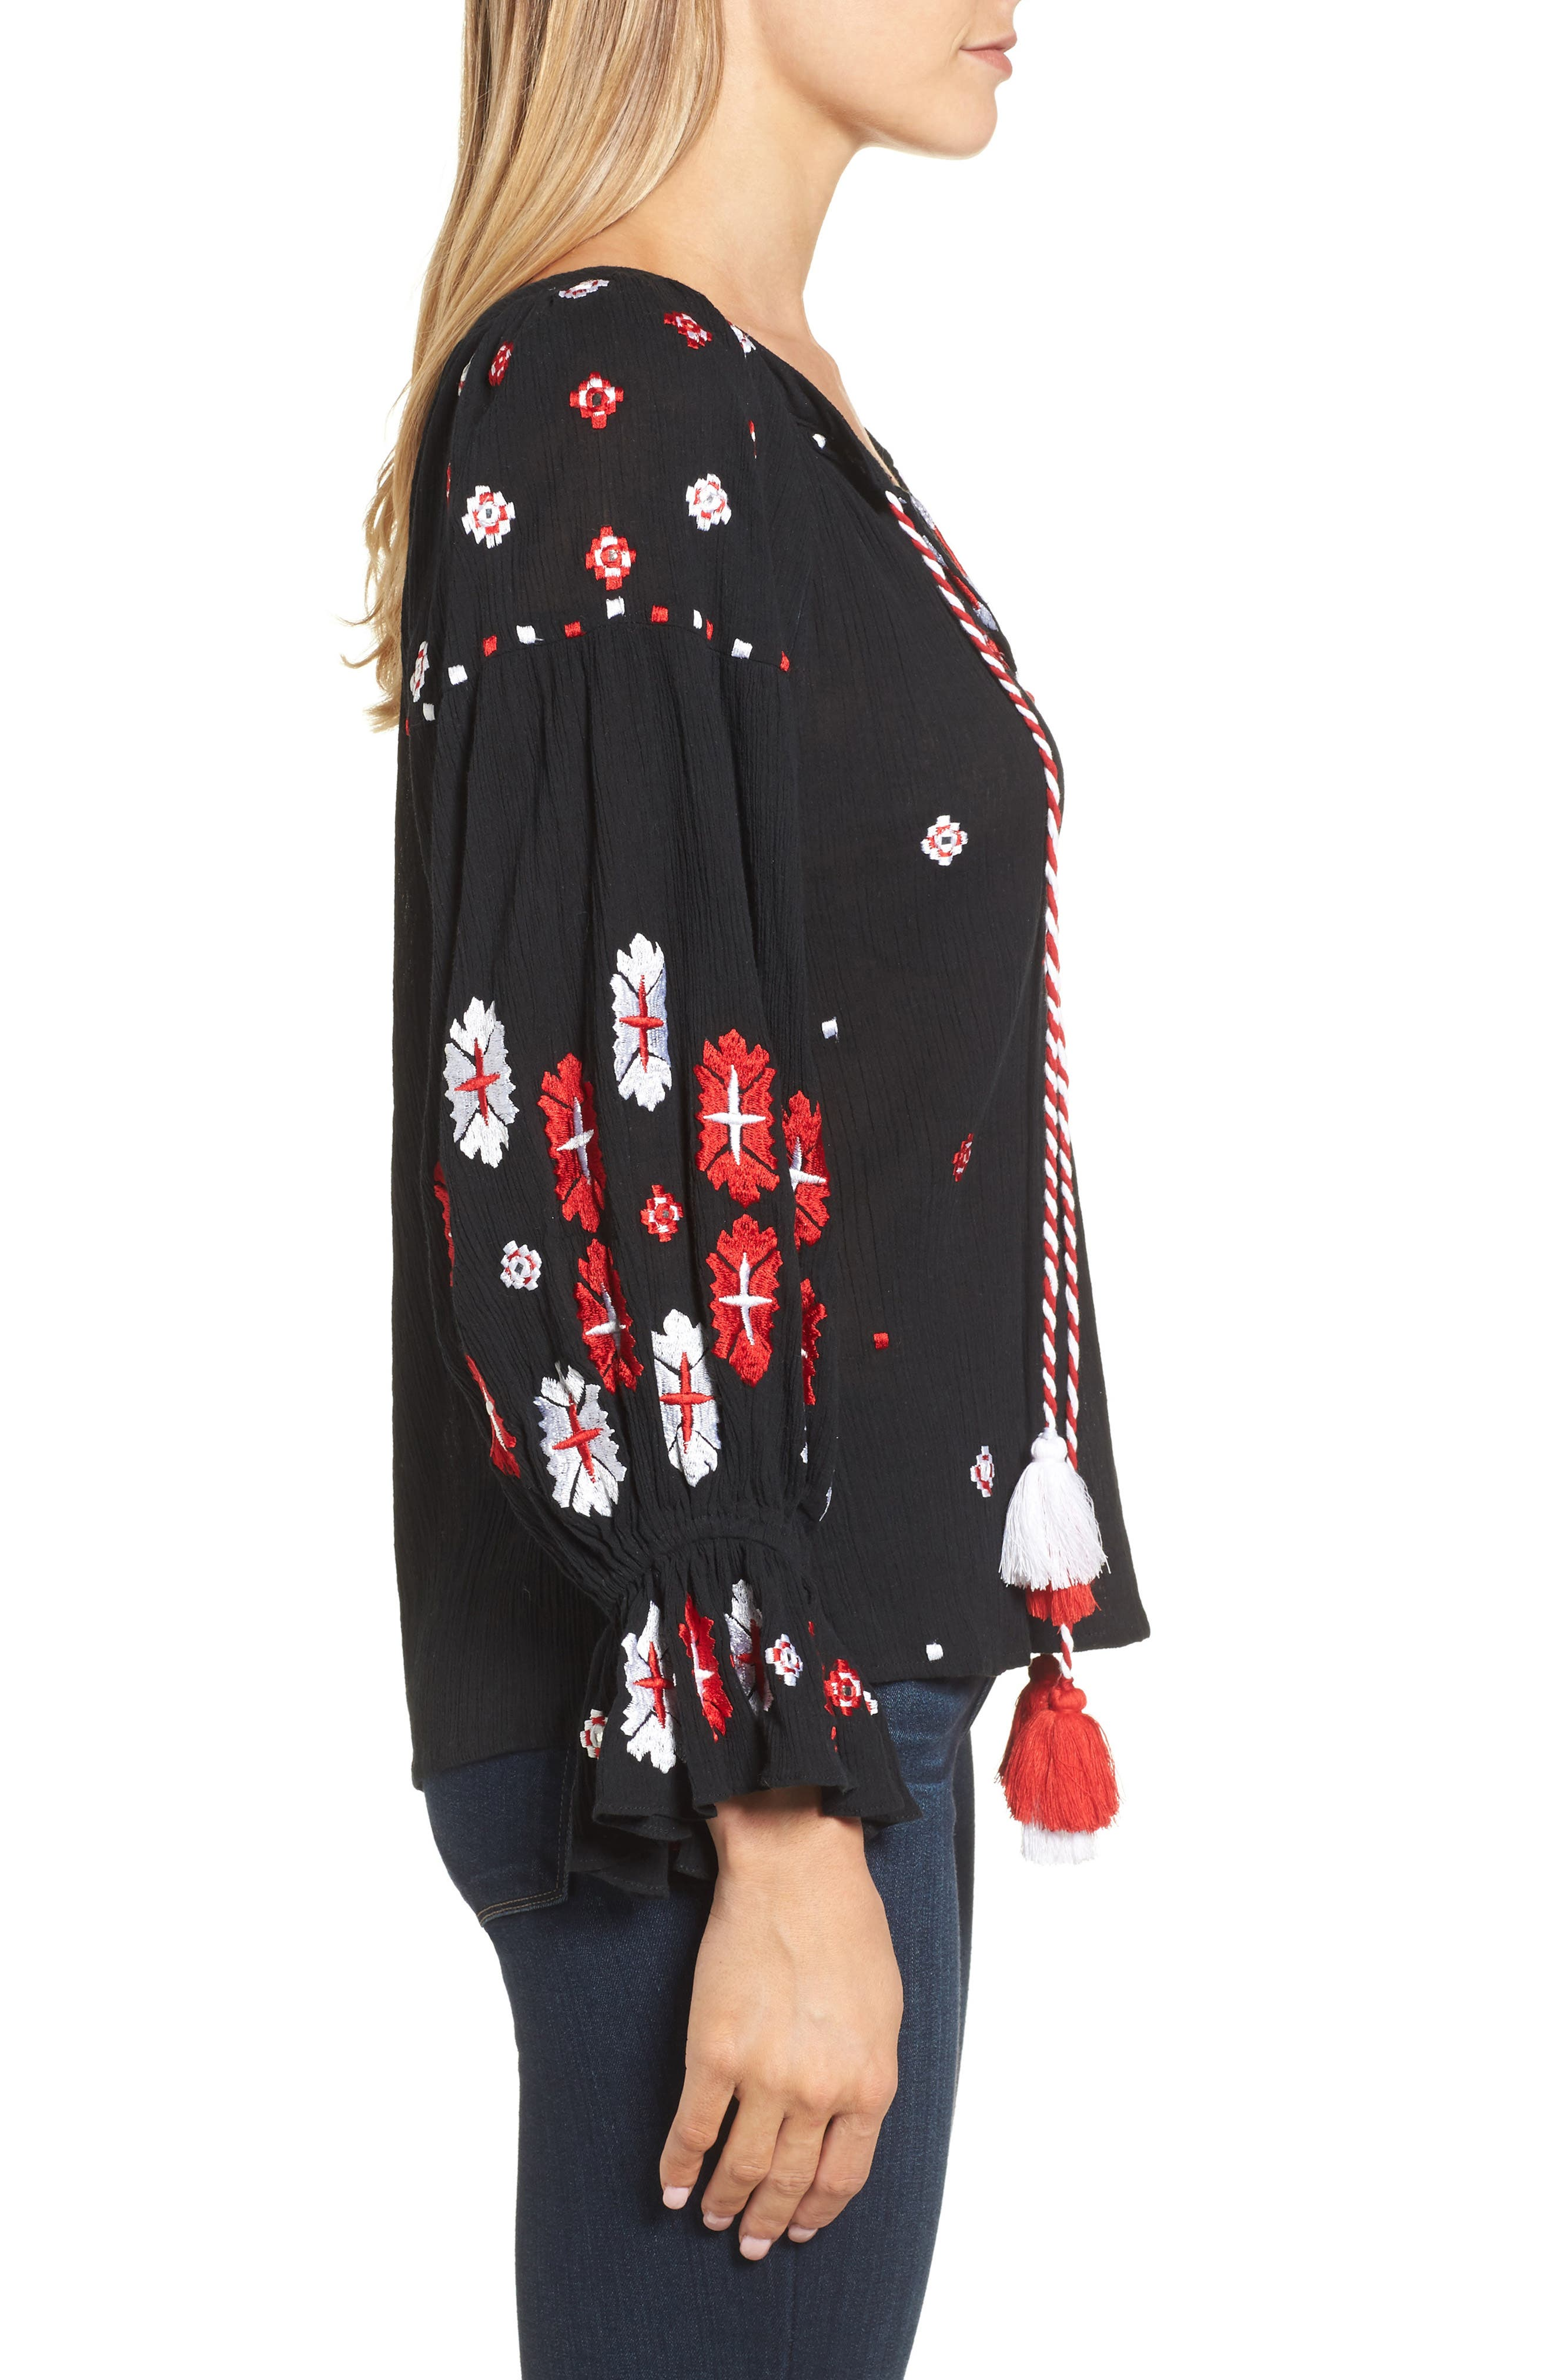 Myra Hand Embroidered Blouse,                             Alternate thumbnail 3, color,                             001